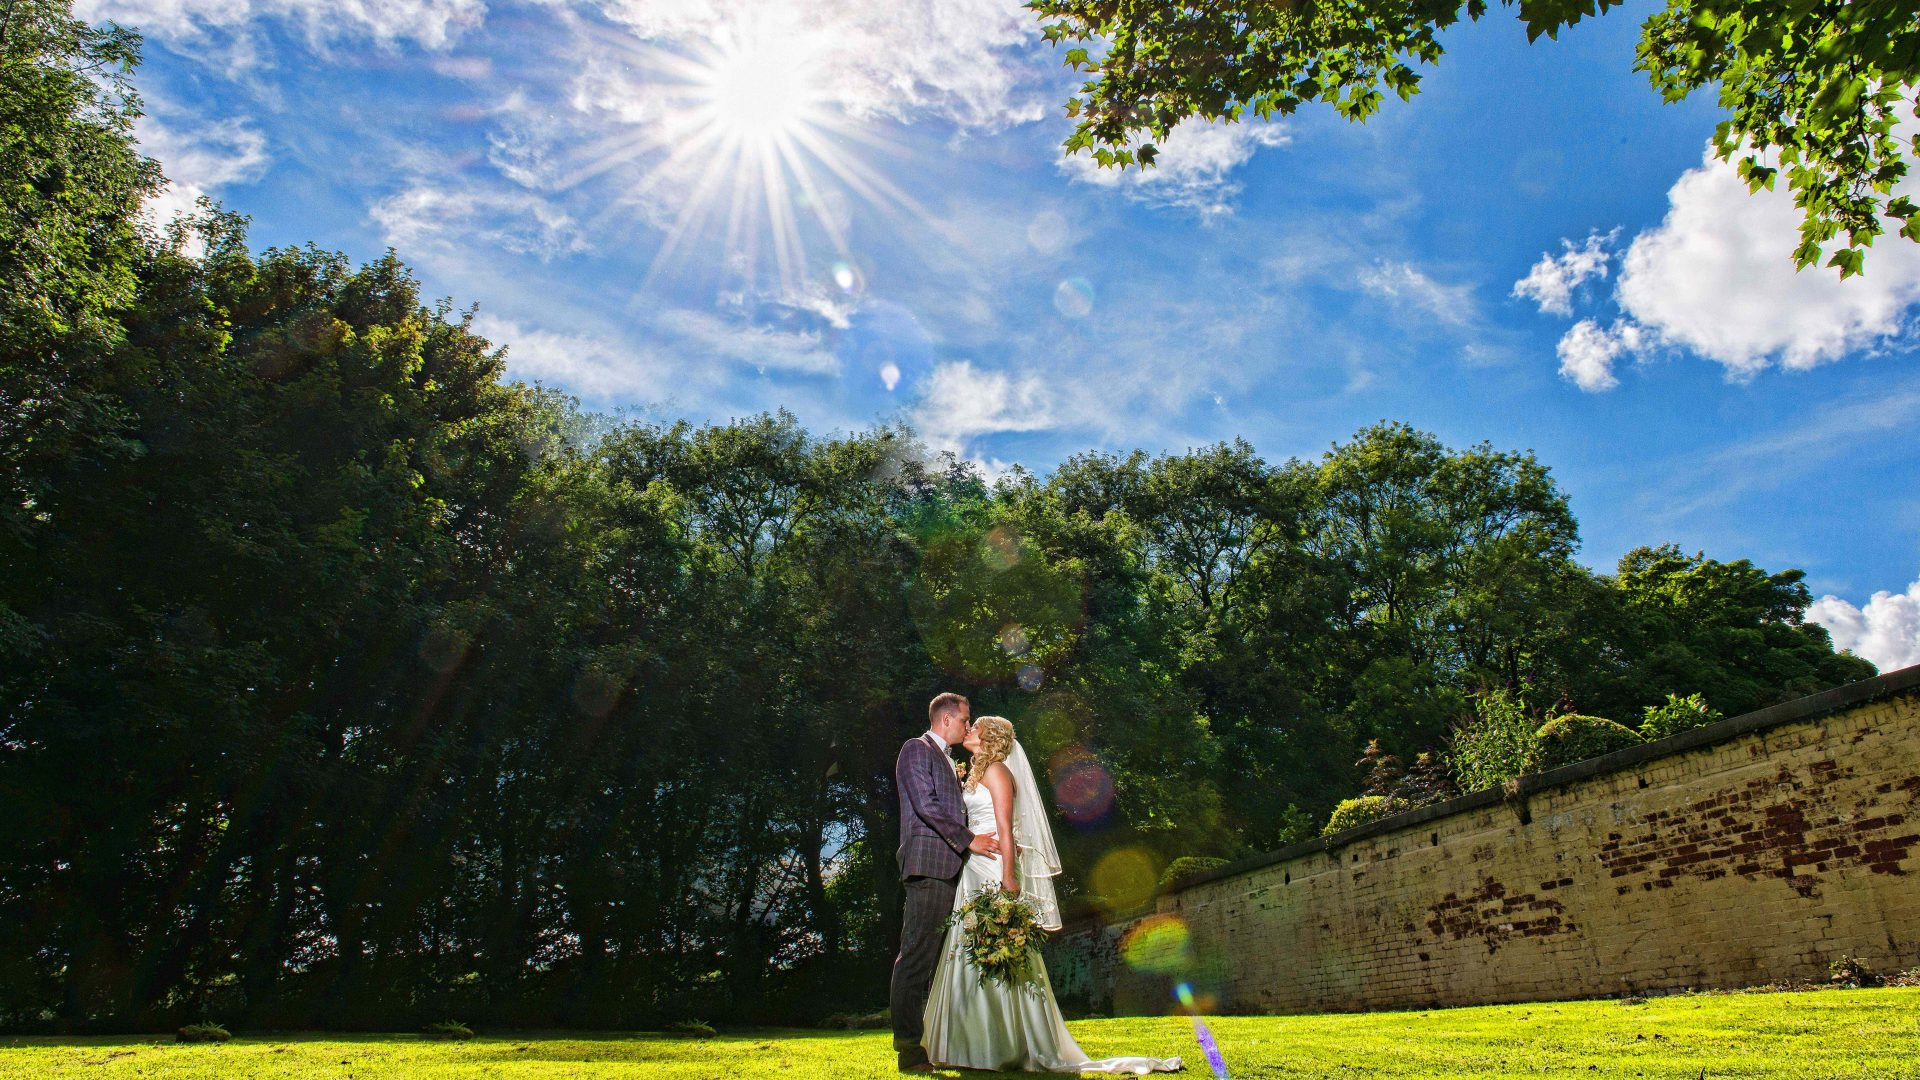 Wedding venues Leeds